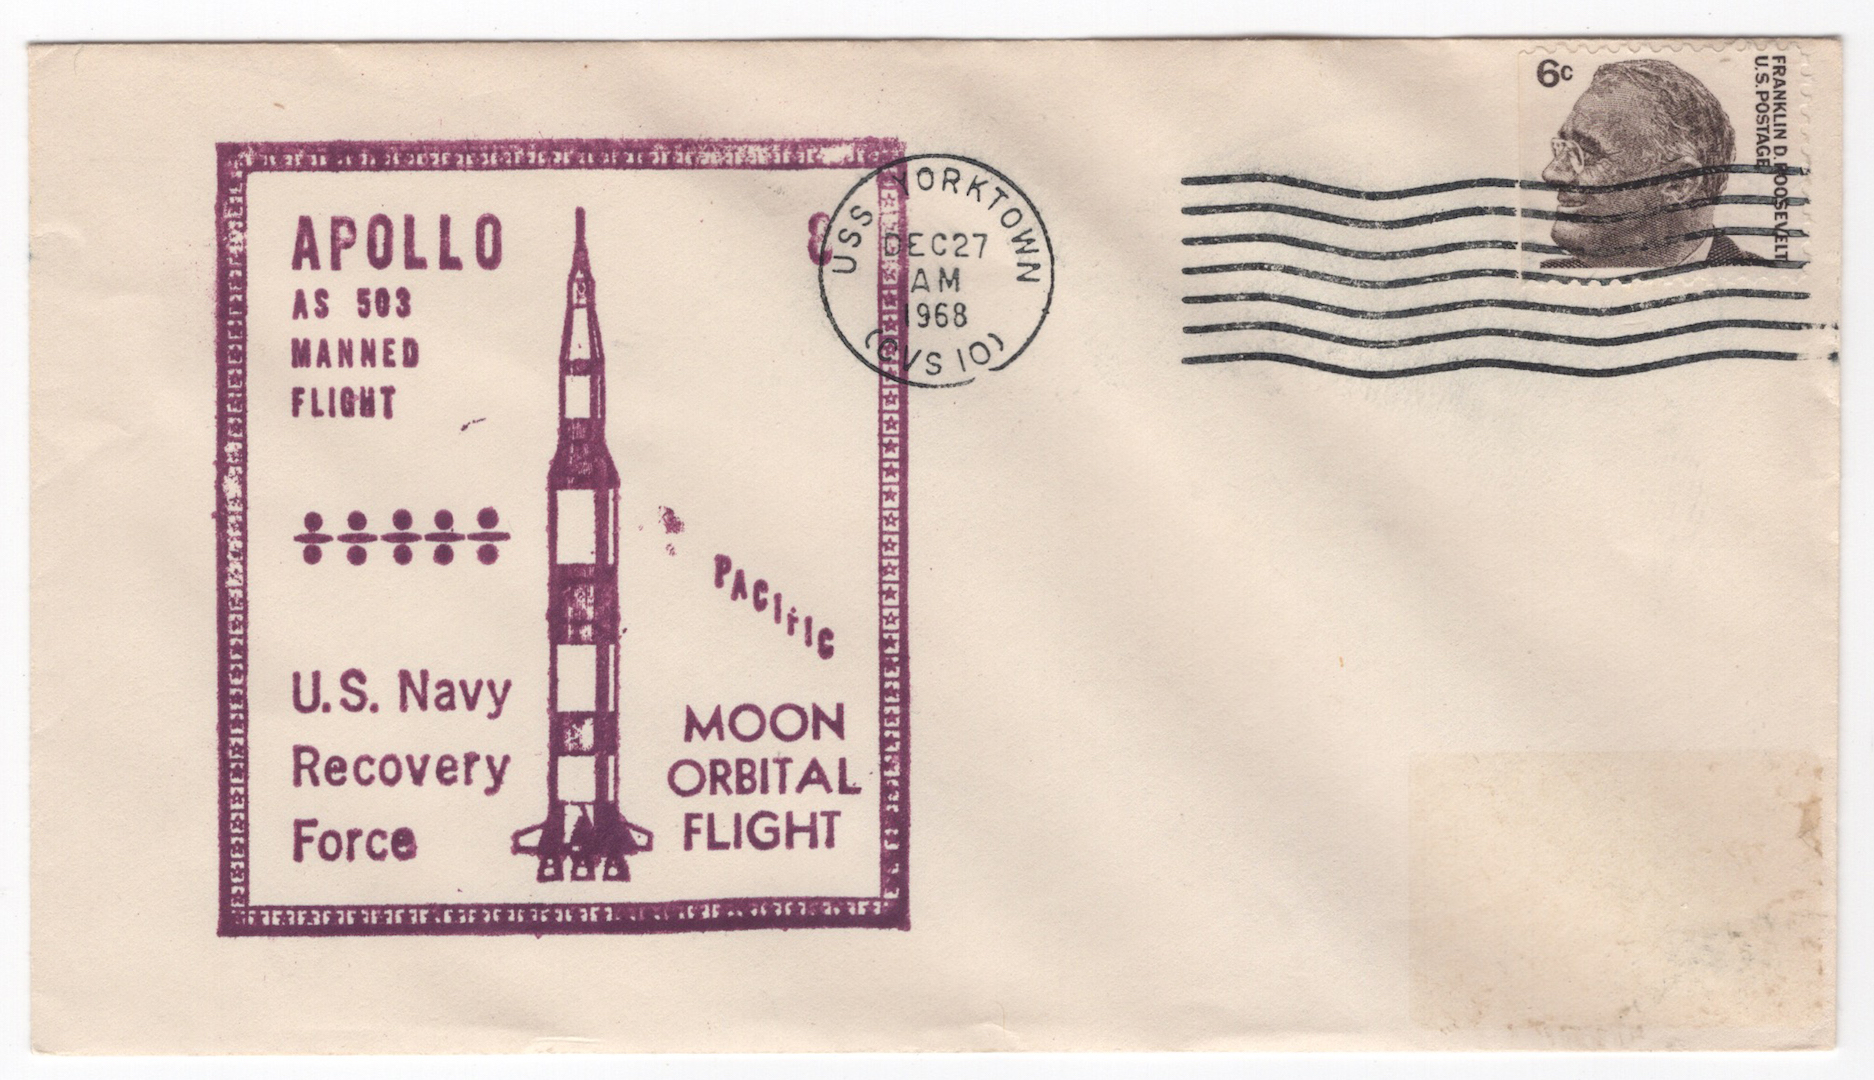 ERM-1968-ENVELOPE-US_NAVY_RECOVERY.jpg